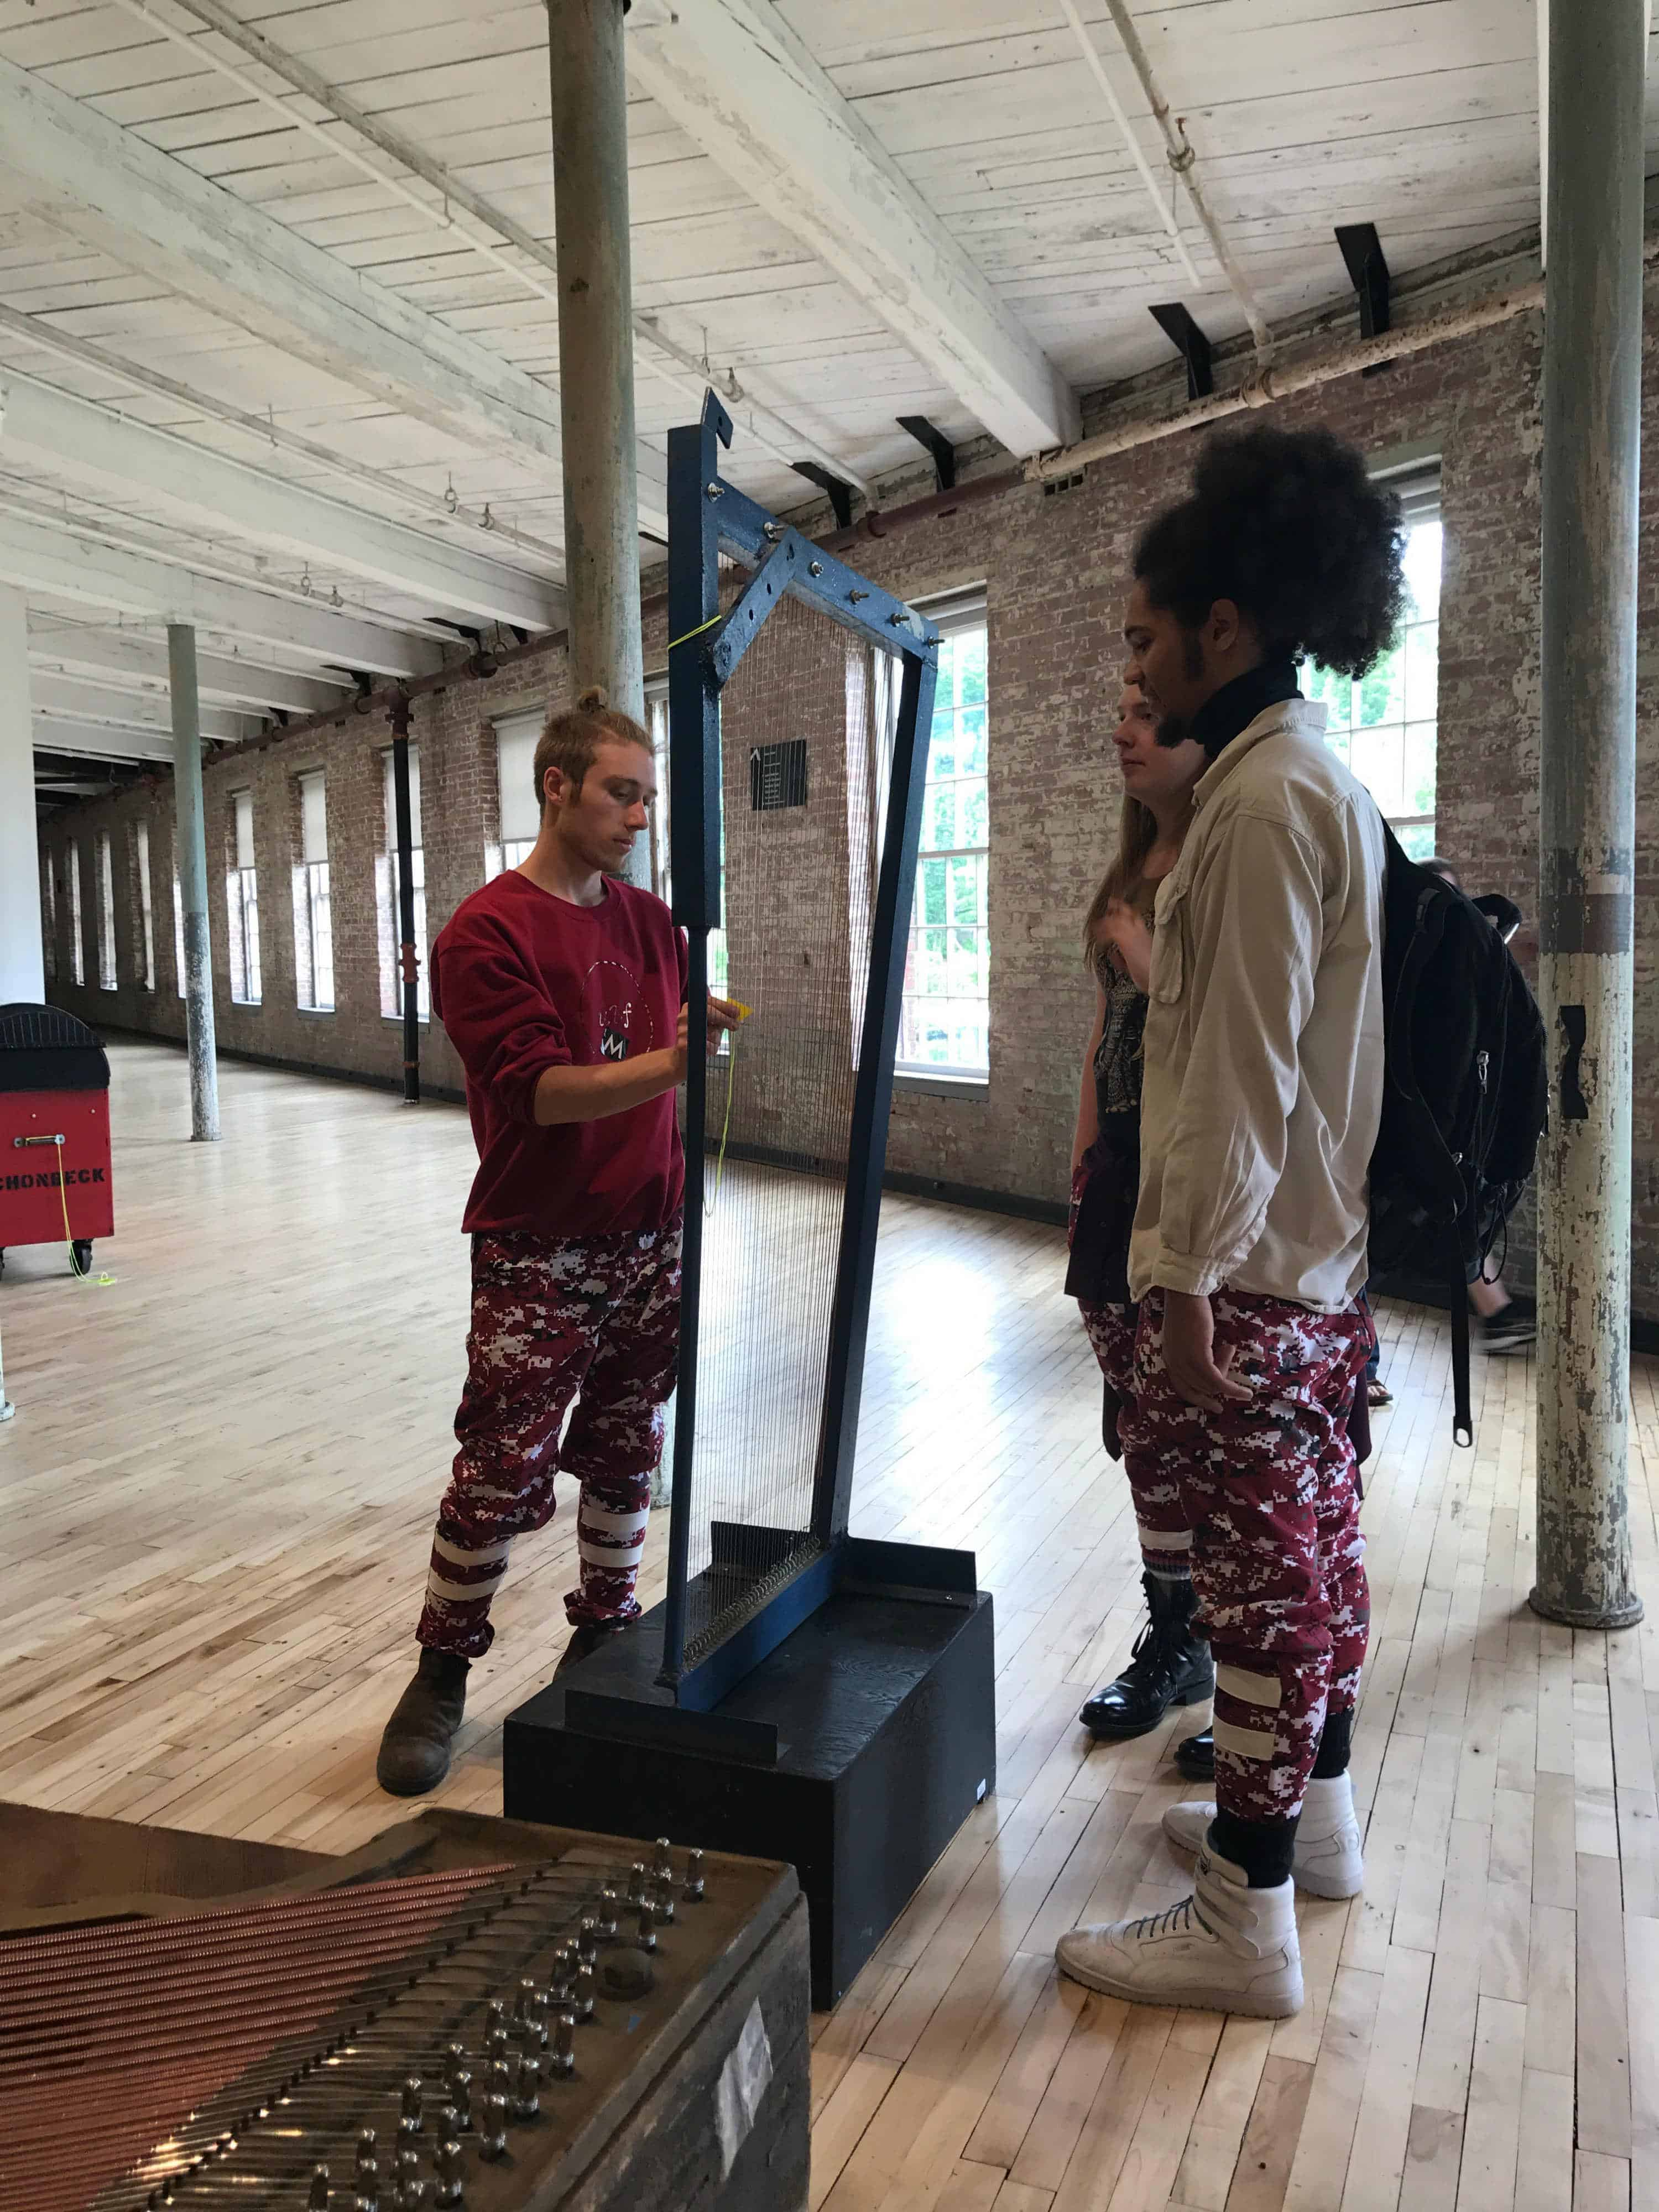 Gunnar Schonbeck's mammoth instruments give invite play in No Experience Necessary in MoCA's new Building 6. Photo by Kate Abbott